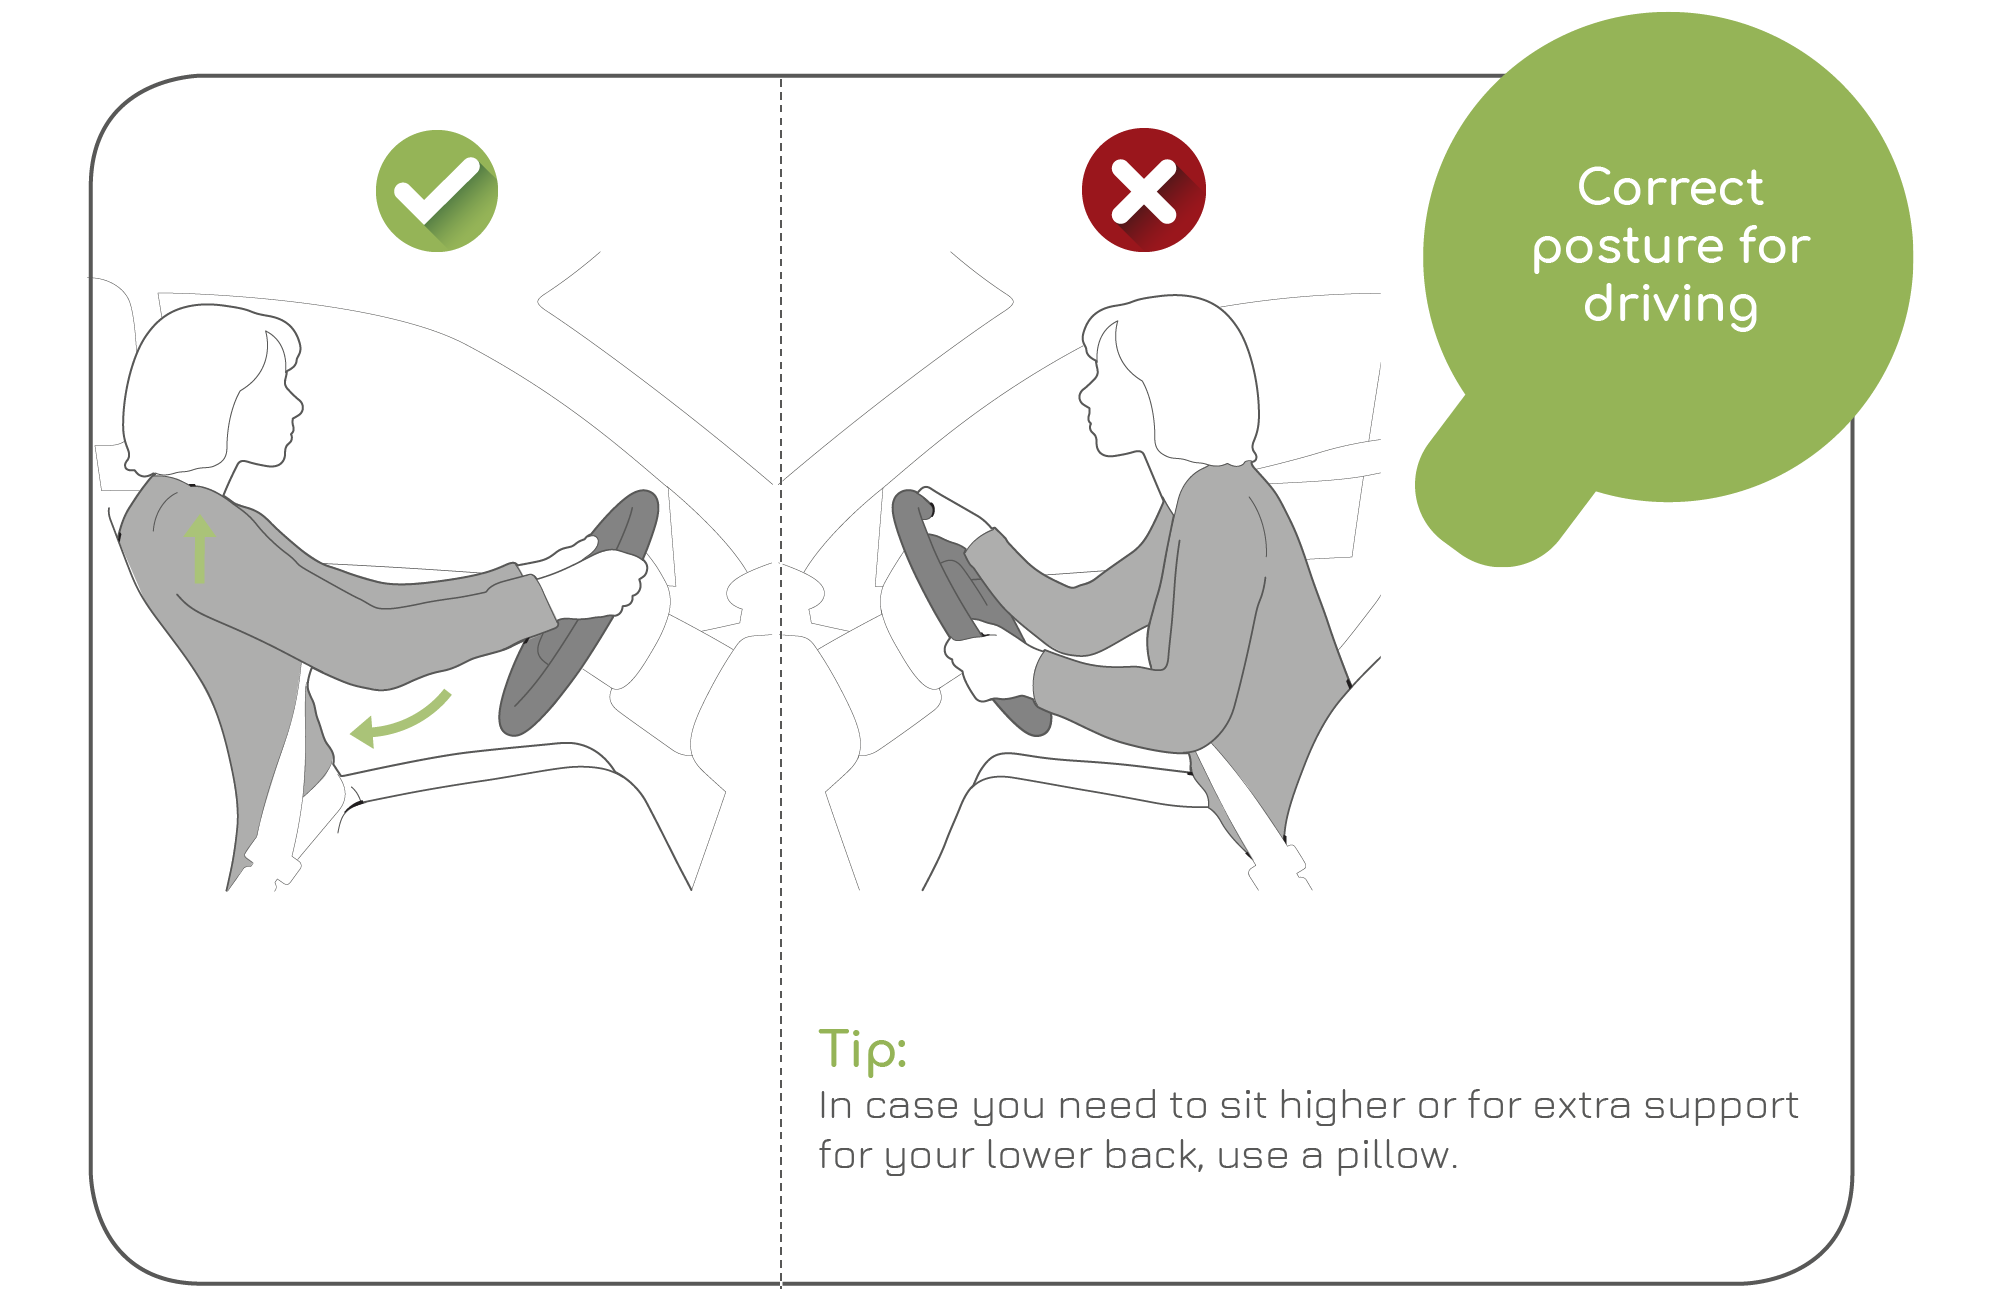 Correct posture for driving